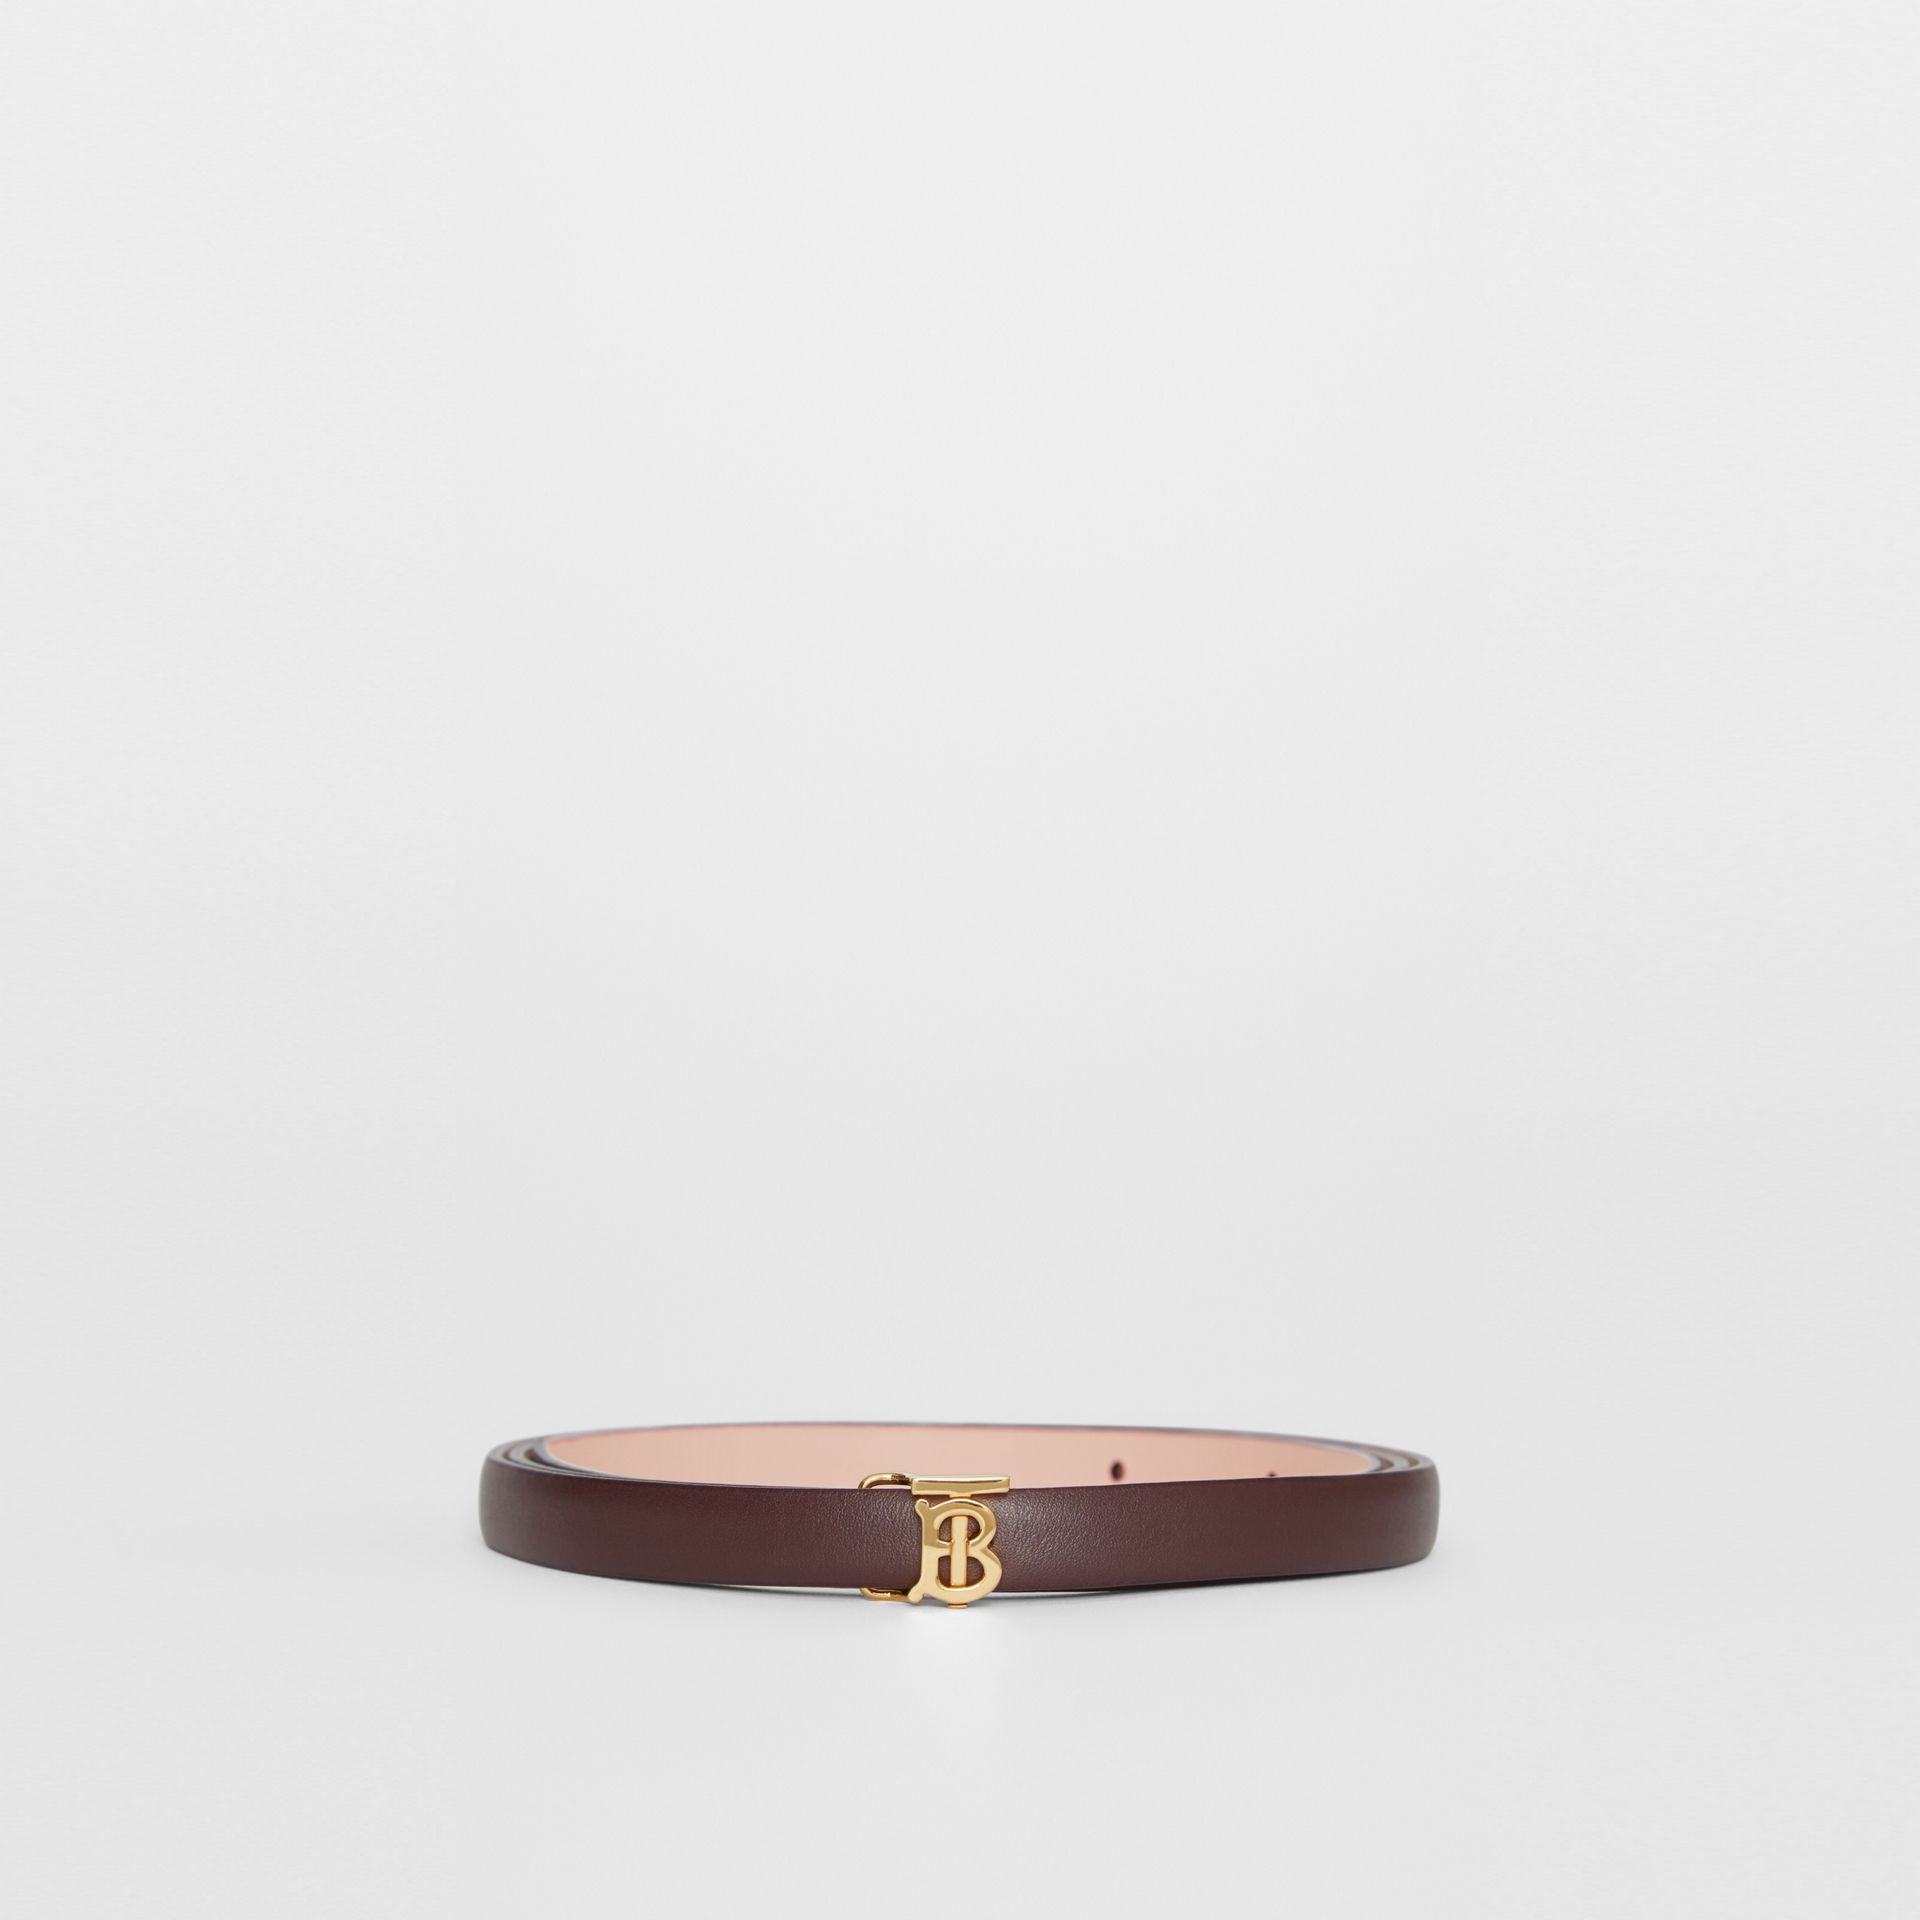 Reversible Monogram Motif Leather Wrap Belt in Oxblood/rose Beige - Women | Burberry United States - gallery image 3